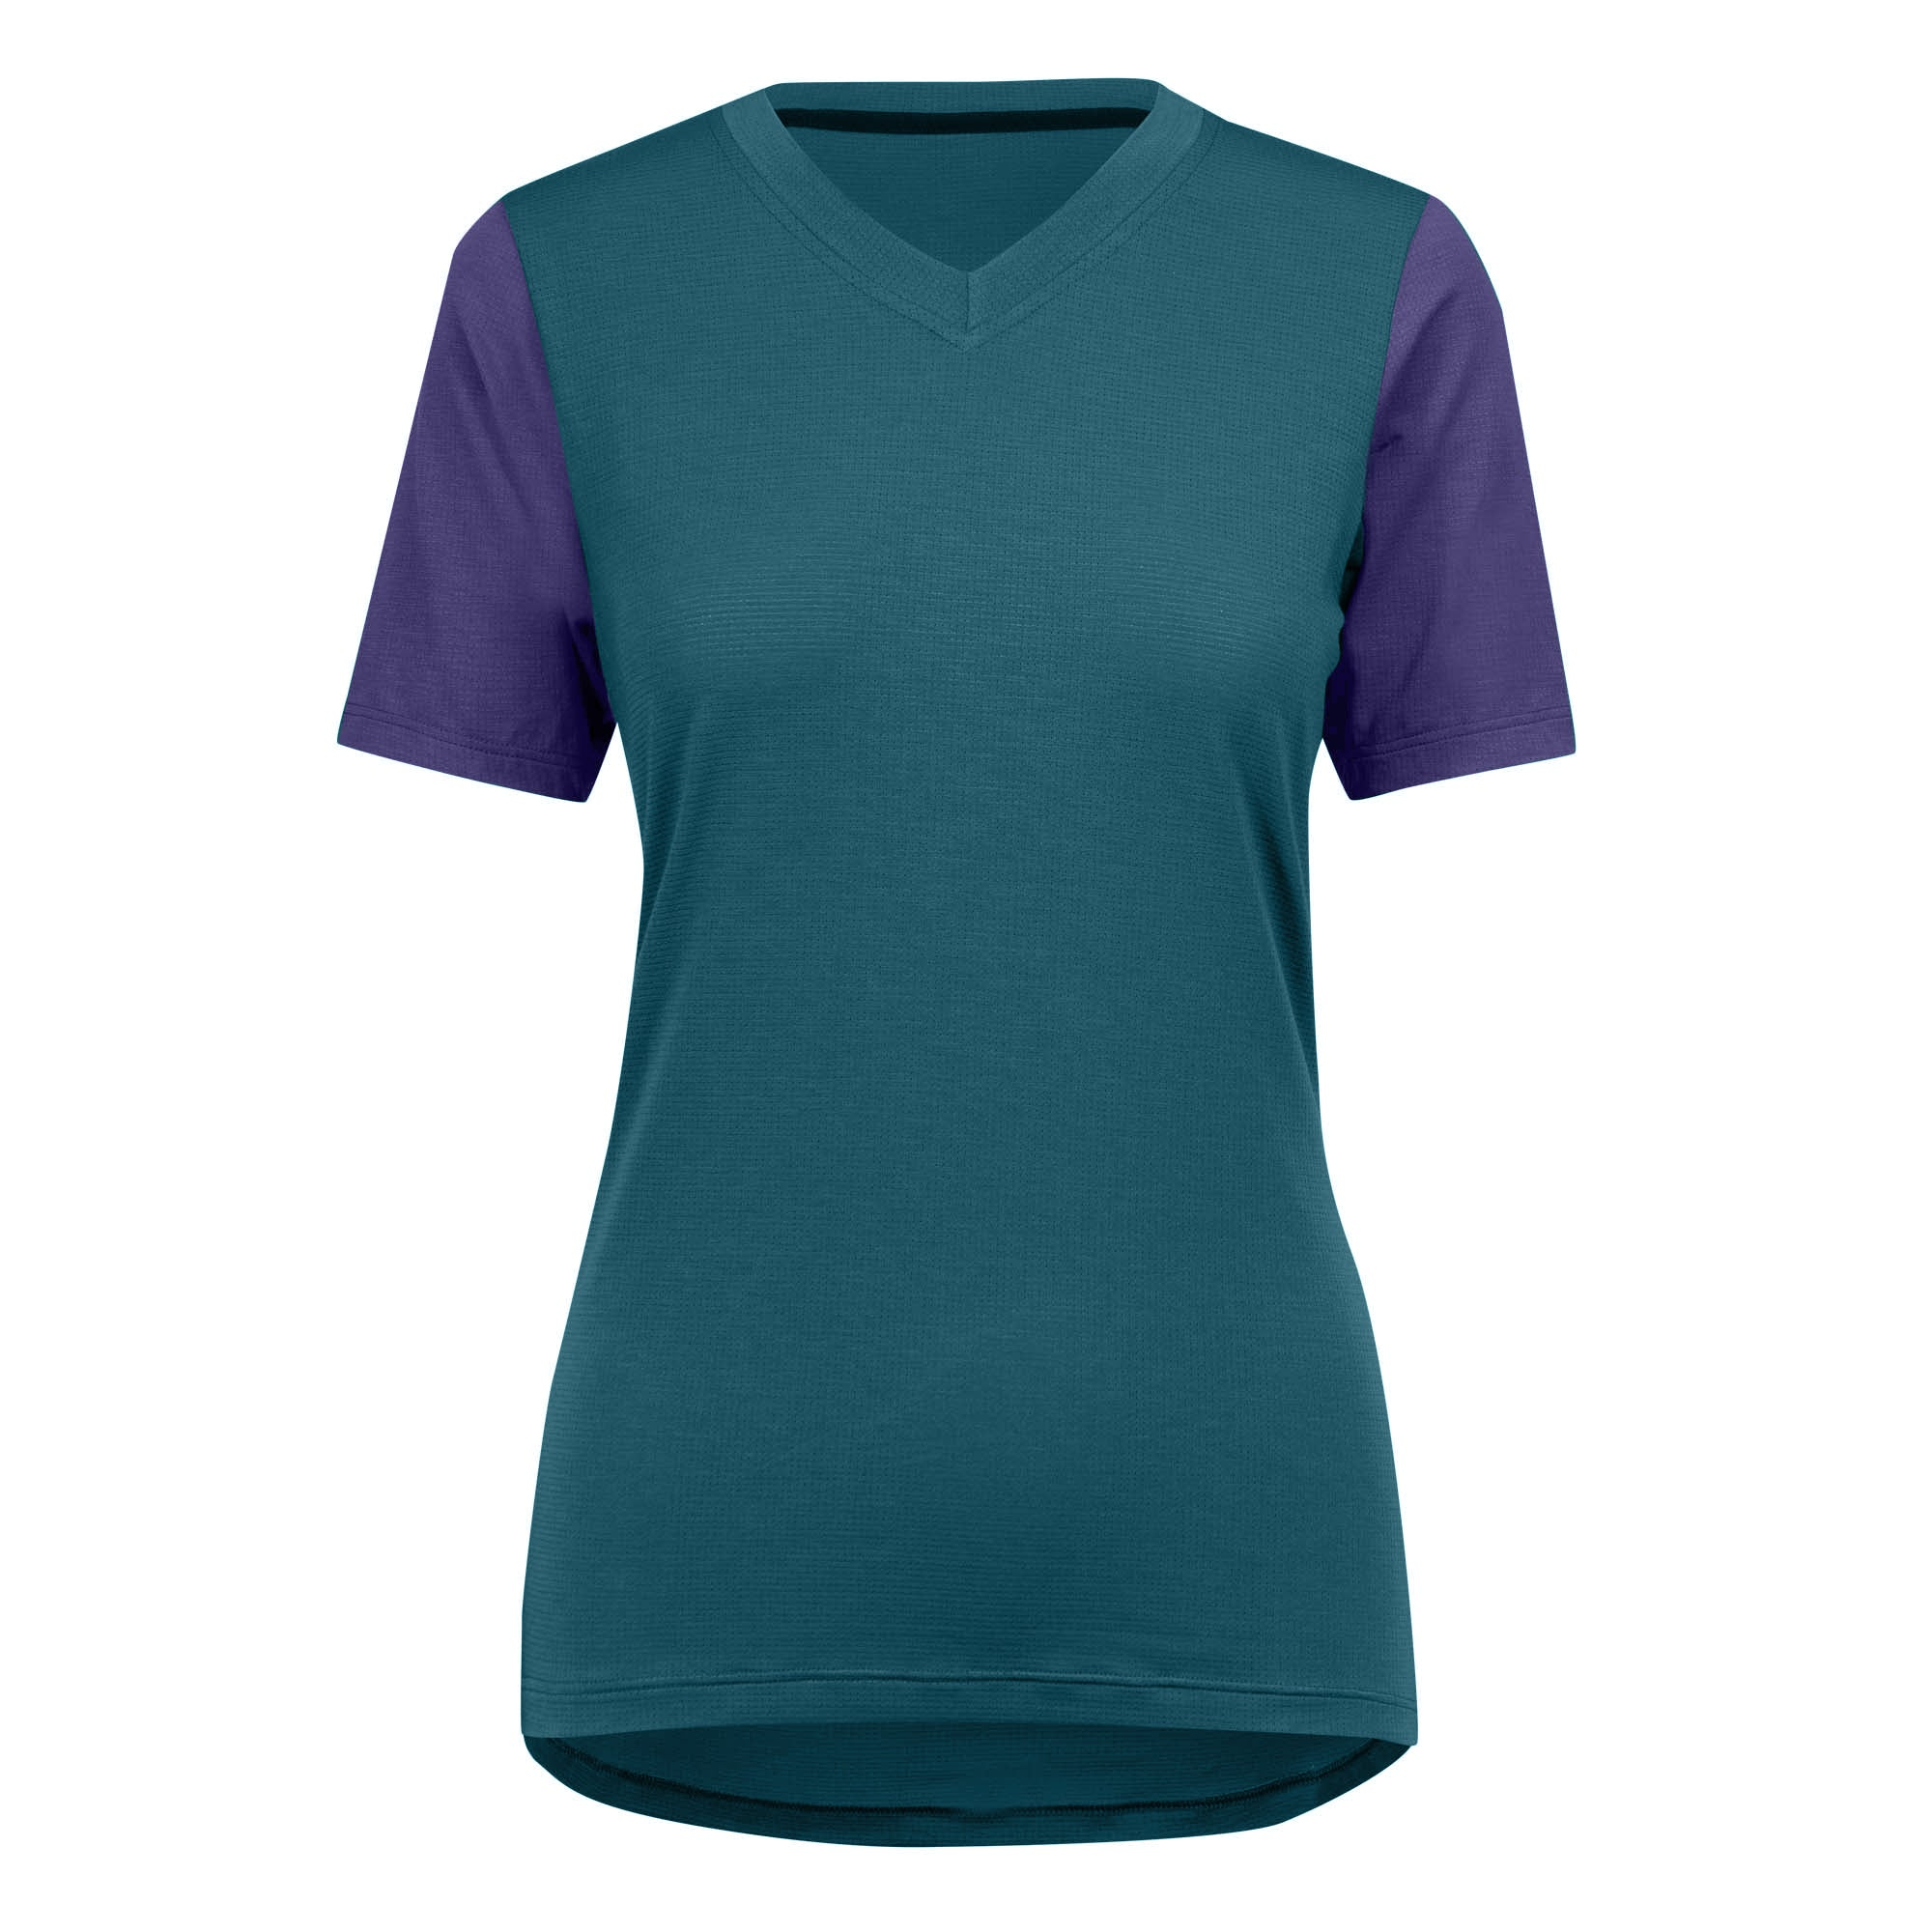 Women's Micromodal TRAIL Tee